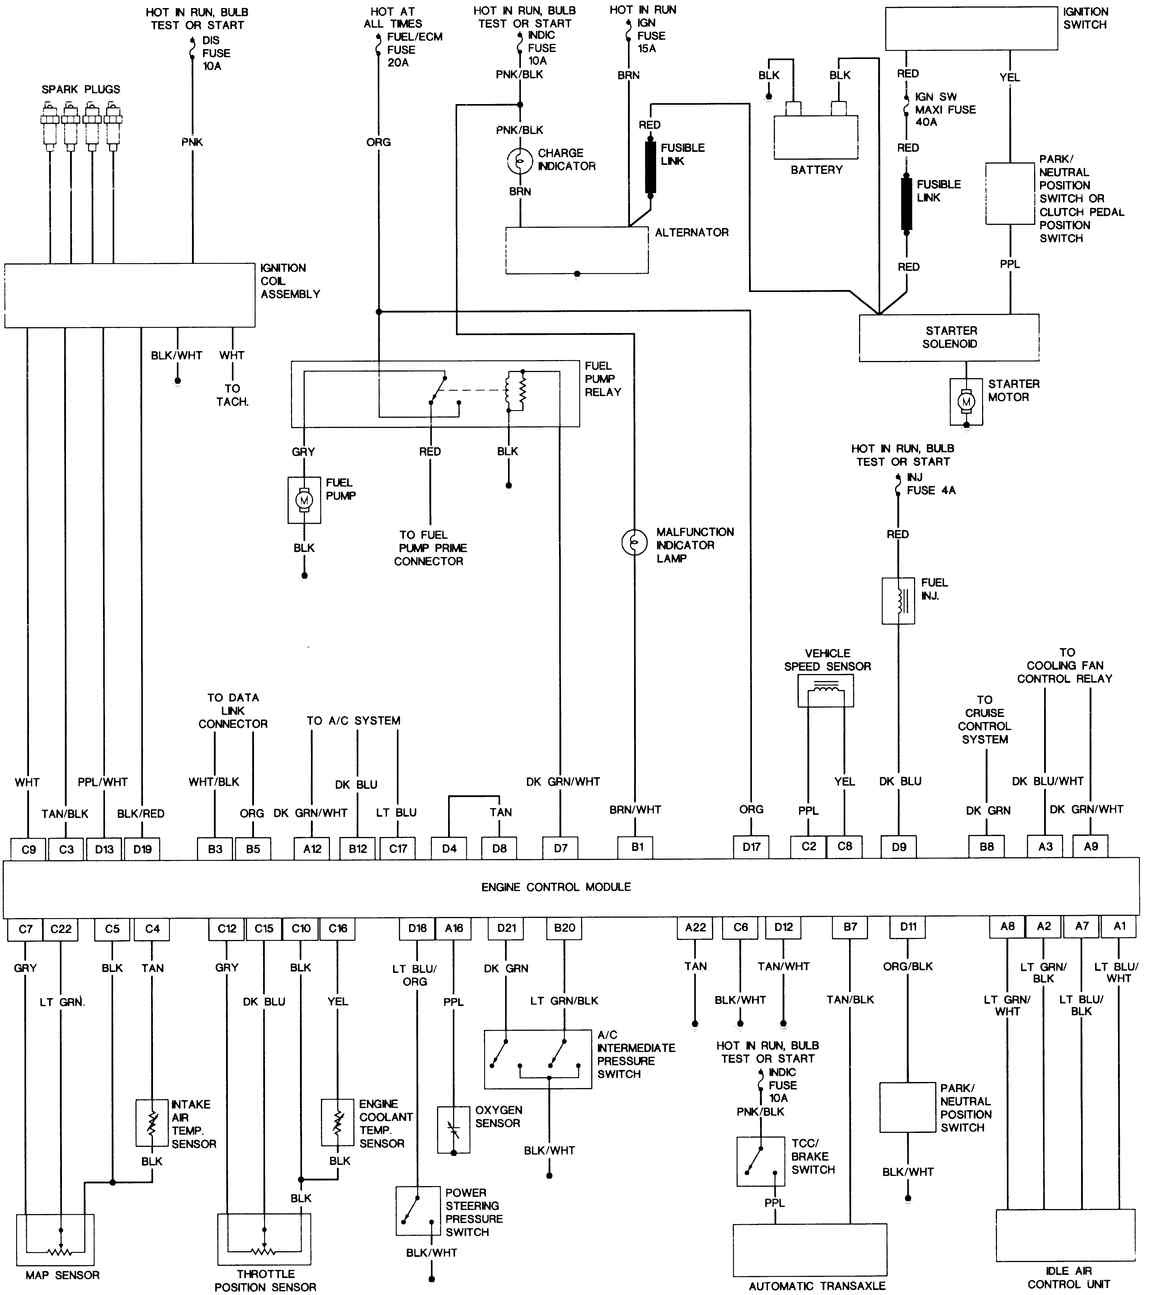 97 Chevy Lumina Wiring Diagram Wiring Diagram Die Warehouse B Die Warehouse B Pasticceriagele It